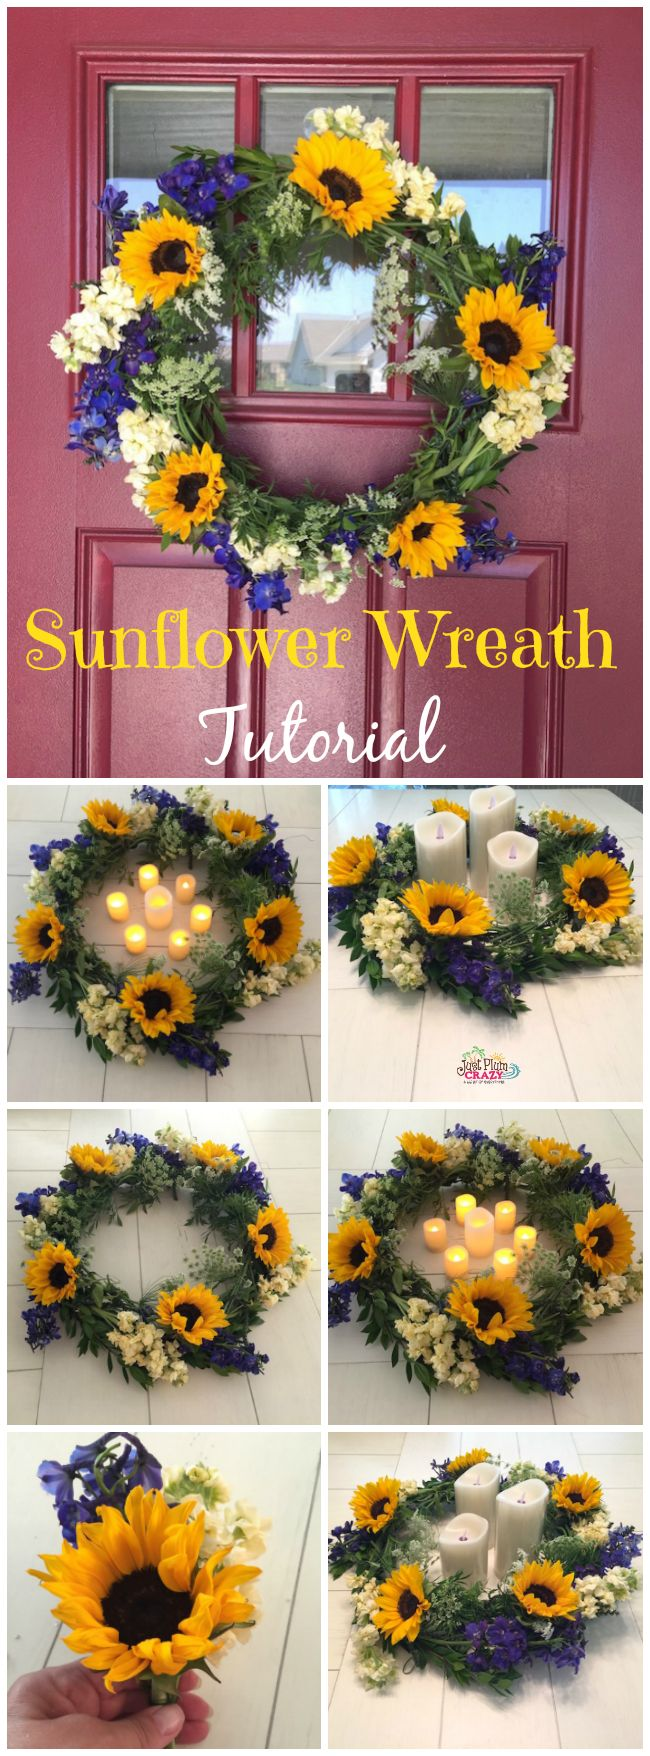 Holiday arrangements wholesale bulk flowers fiftyflowers - Fiftyflowers Are Wholesale Flowers And Have Every Kind Of Flower You Are Looking For For Your